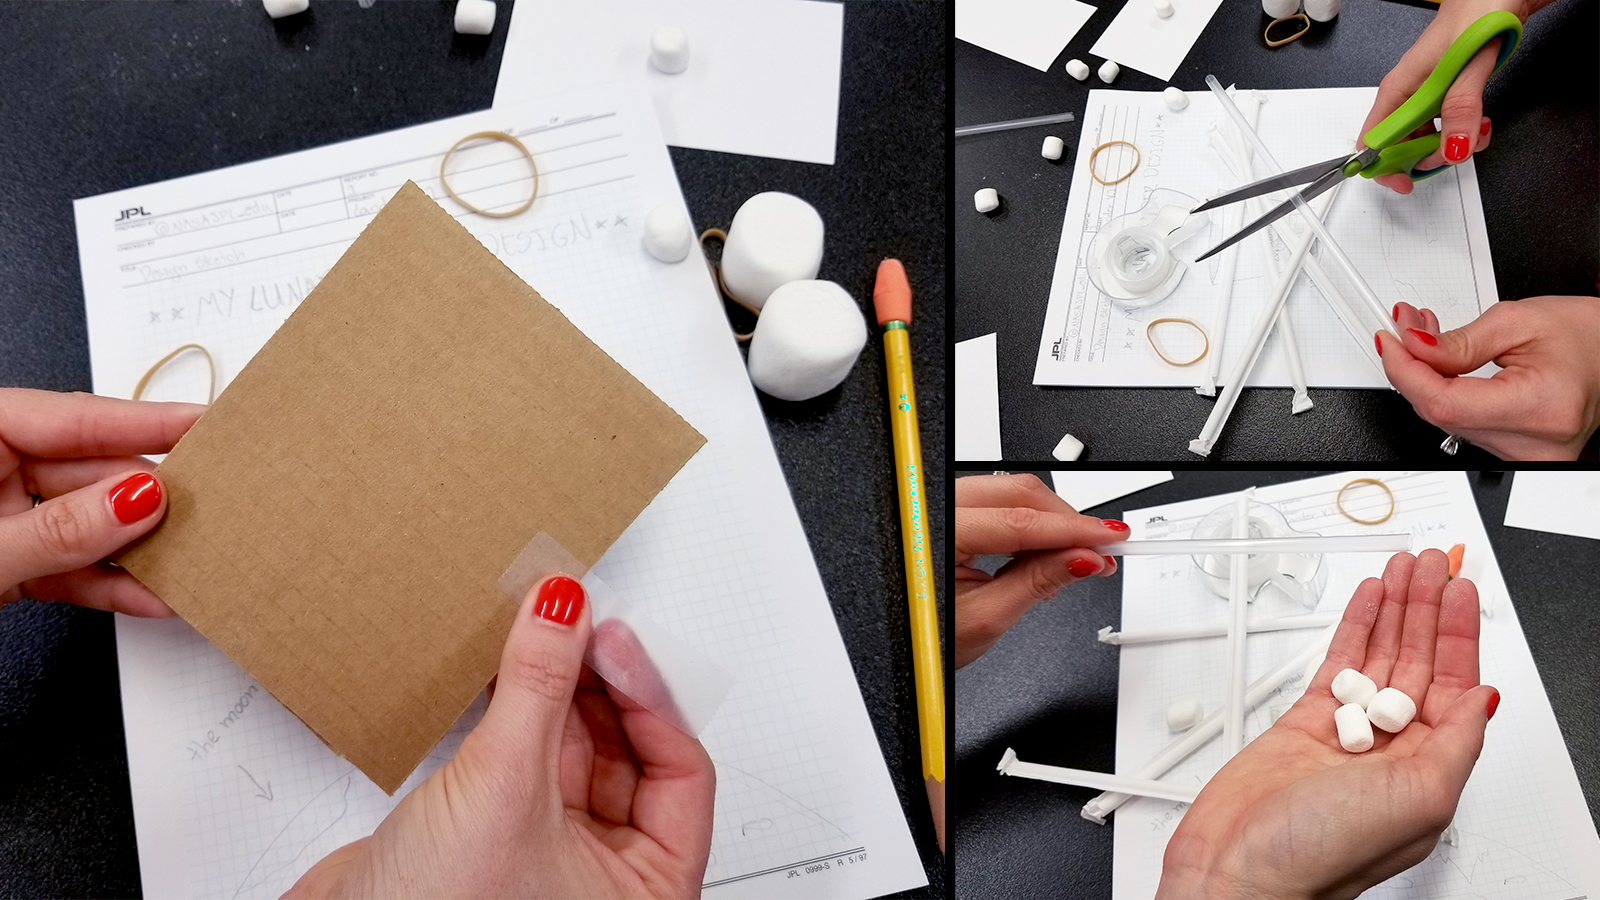 Collage of images showing a person adding tape to a piece of cardboard, cutting a straw with scissors and holding marshmallows